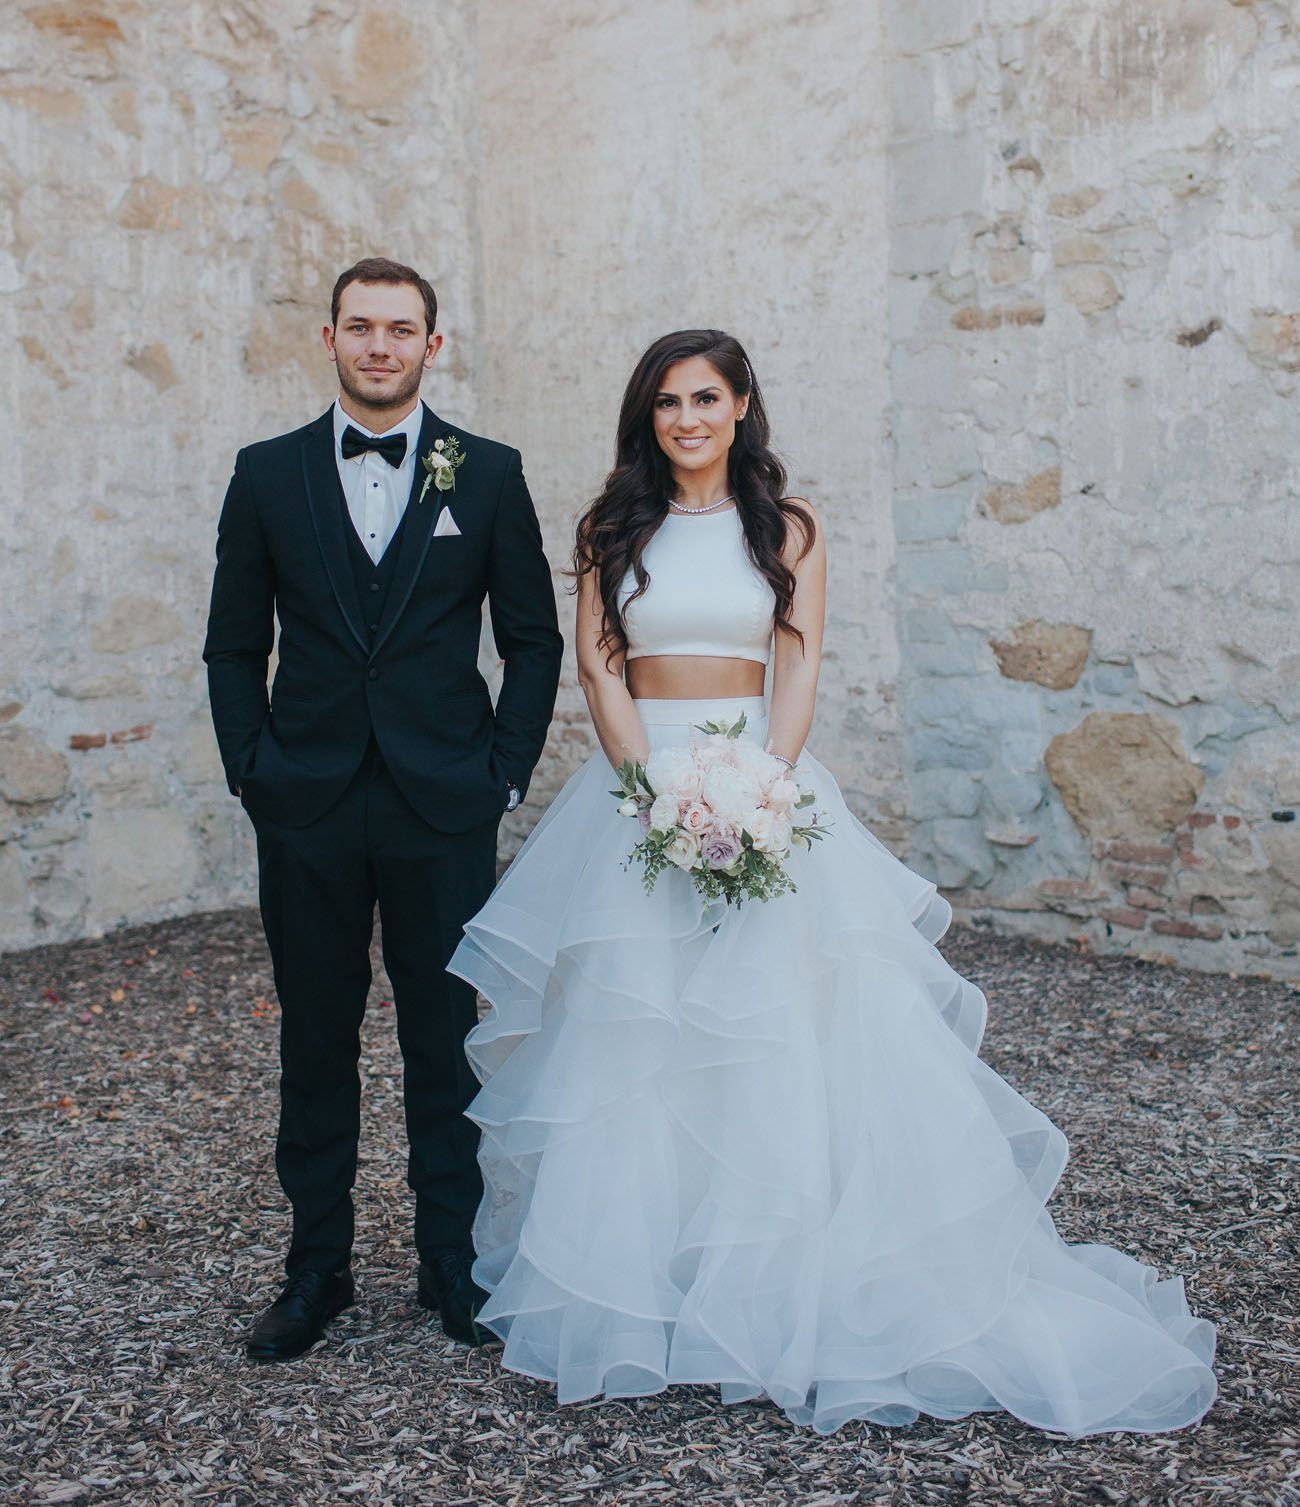 This two piece wedding dress is perfectly complemented by the